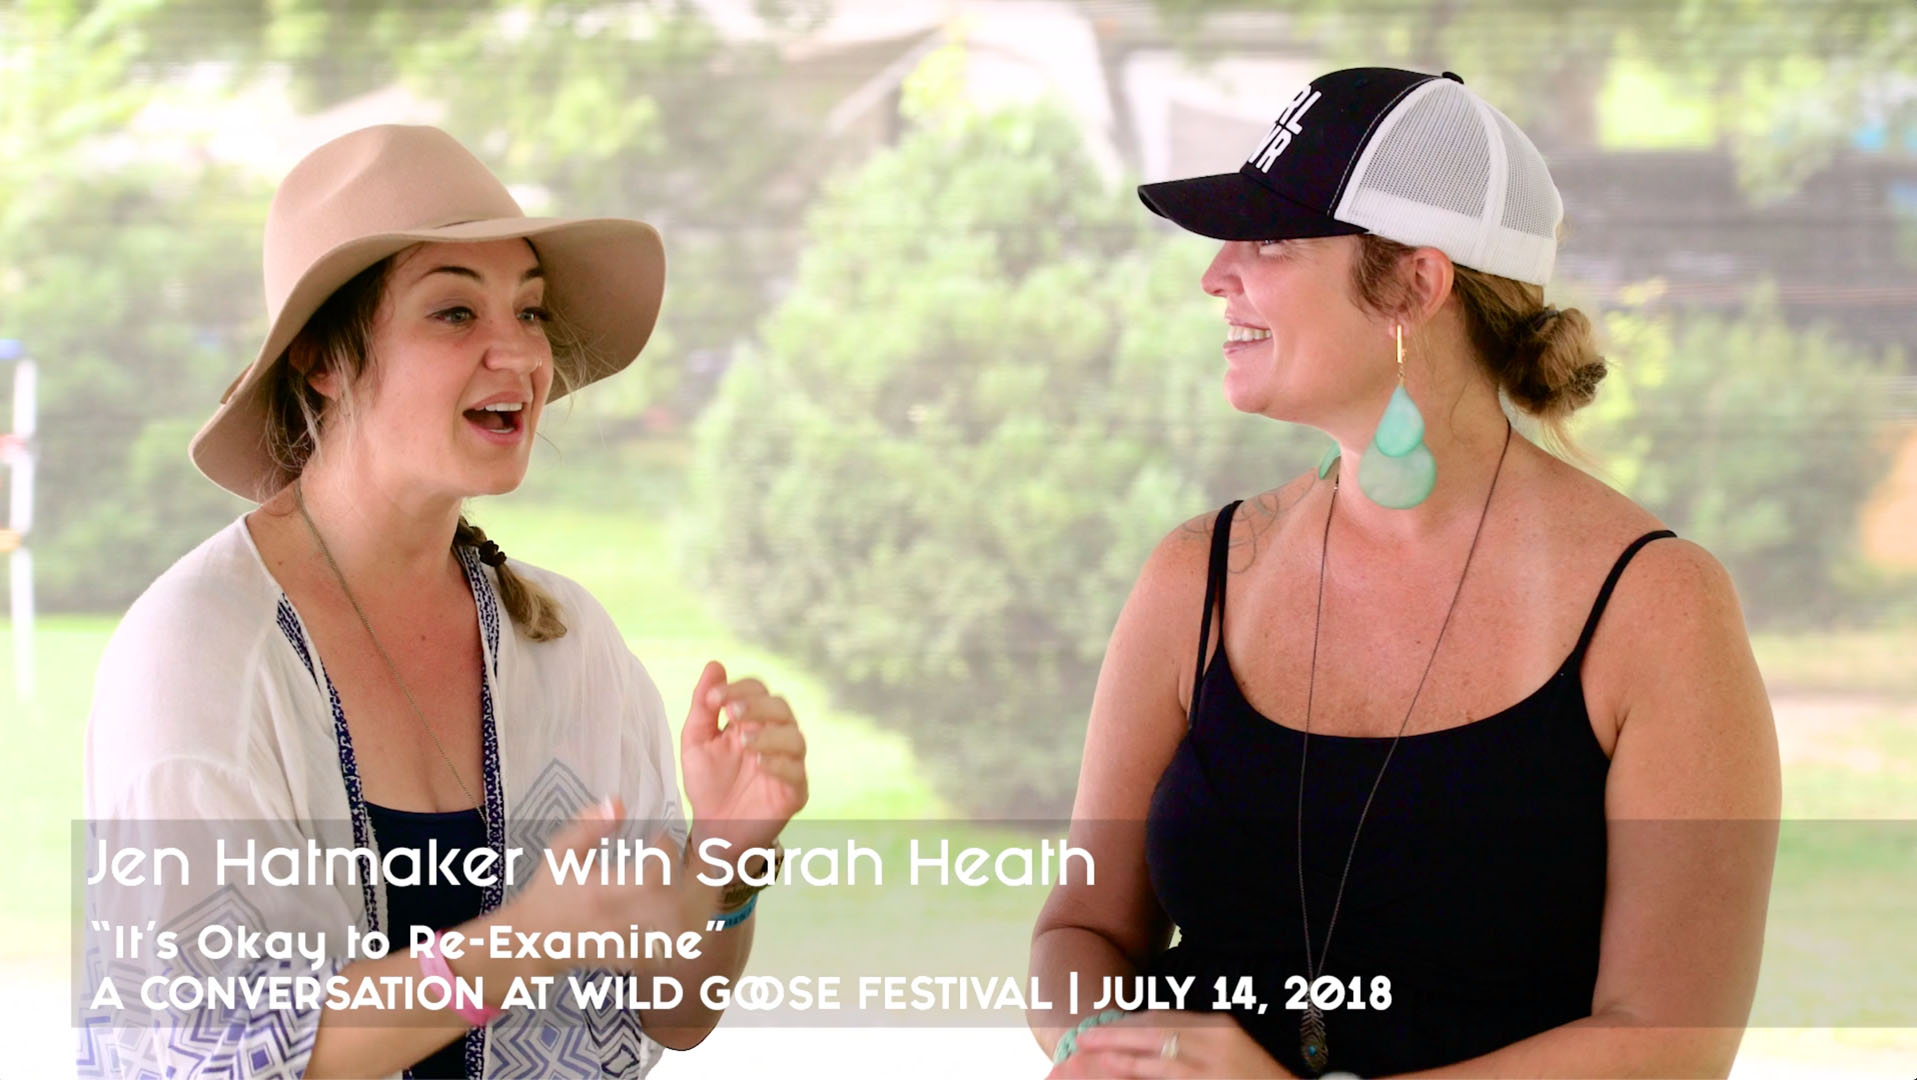 Jen Hatmaker with Sarah Heath